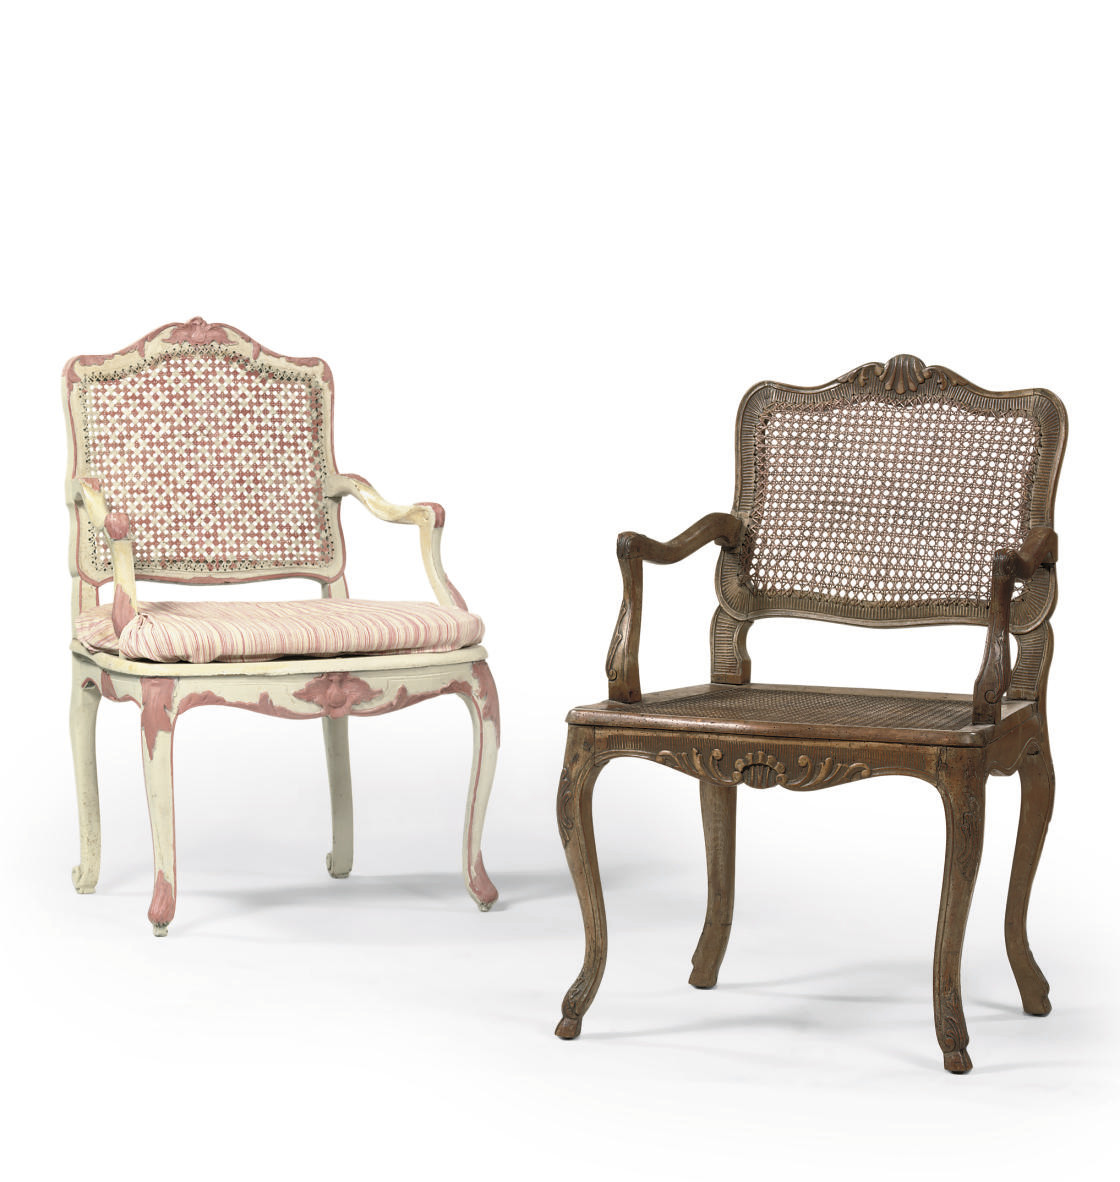 A GREY AND PINK PAINTED FAUTEU